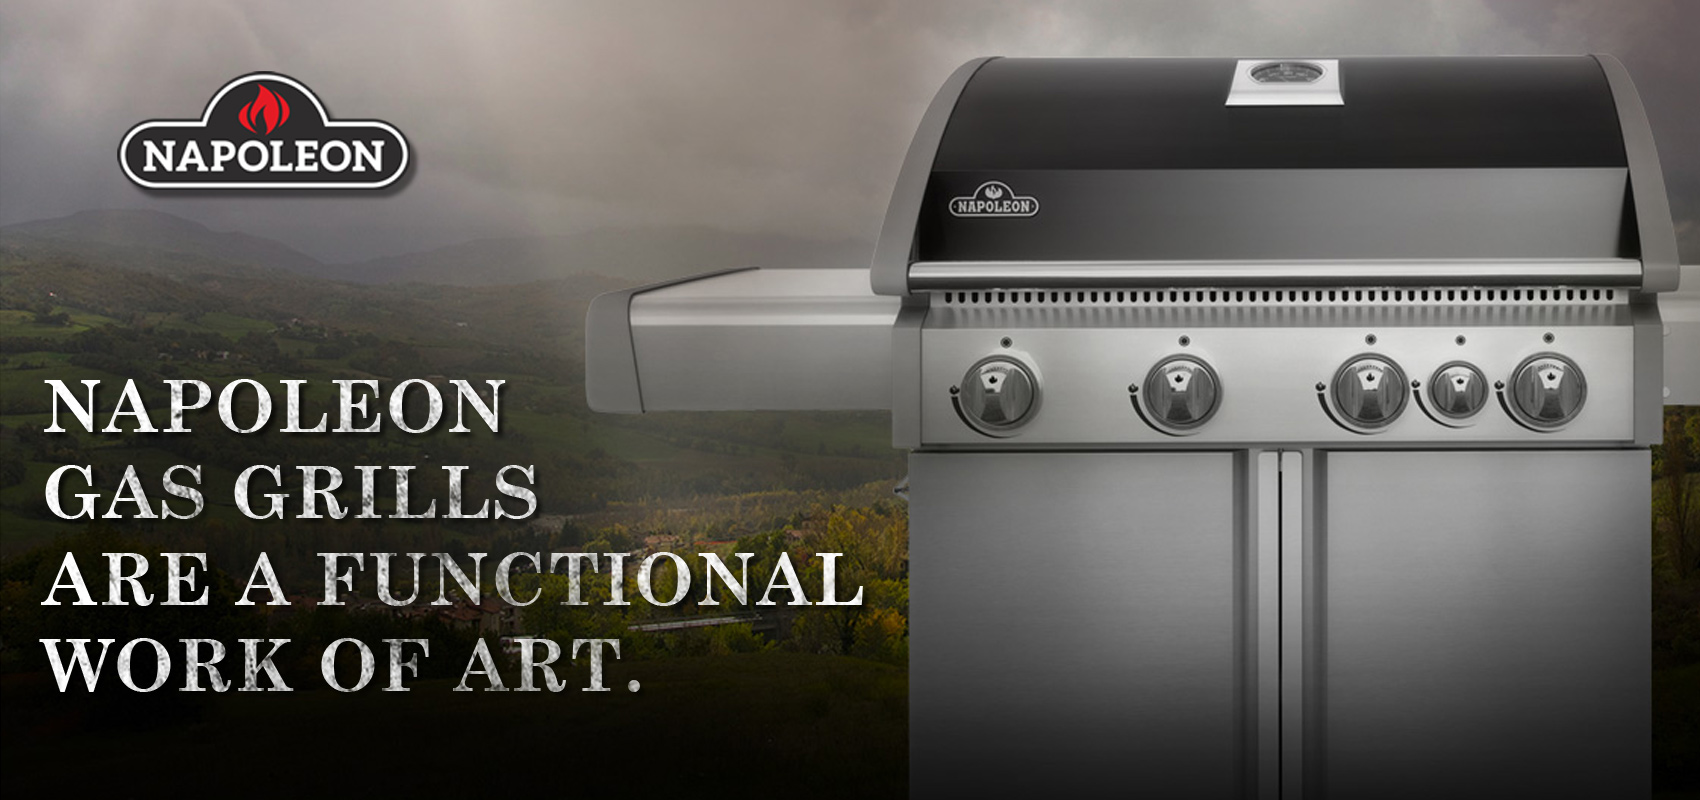 Napoleon Gas Barbecue Grills, NH